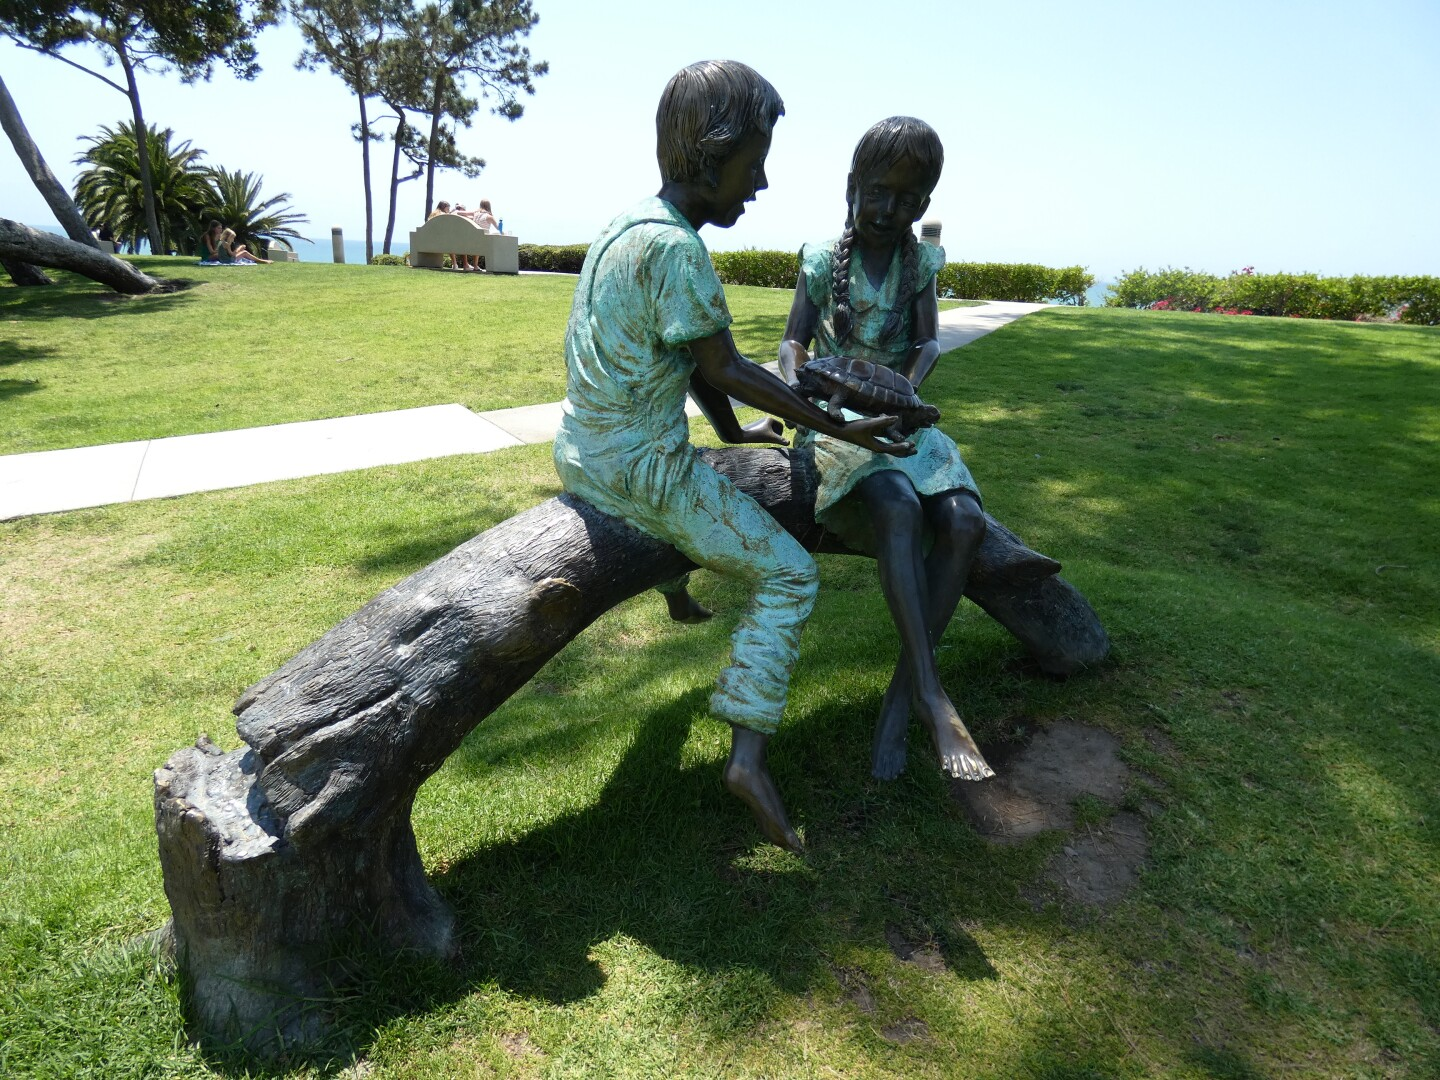 A bronze sculpture depicts two children sitting on a log is planted under a shaded patch of grass at Pines Park. The children look at a turtle held by one of the them. Their clothing is a bright, teal-green.